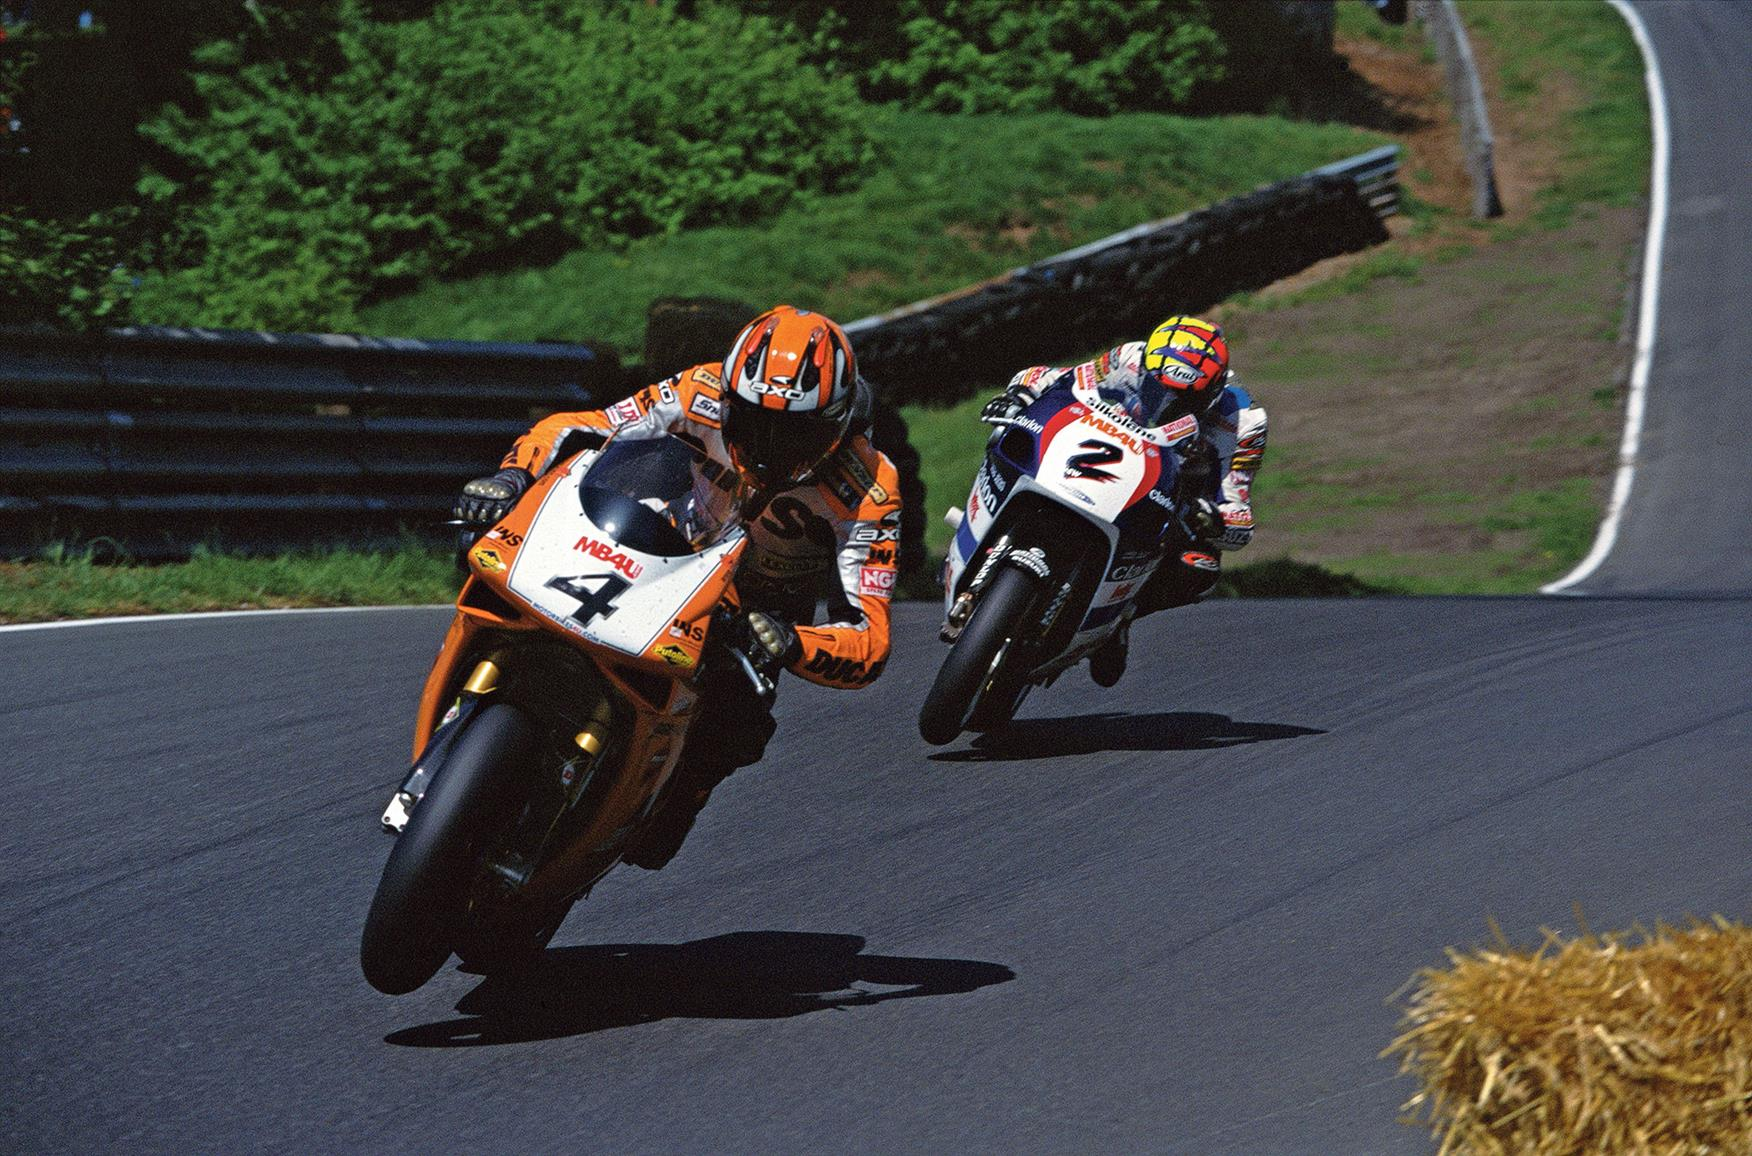 Neil Hodgson and Chris Walker battle for the BSB title